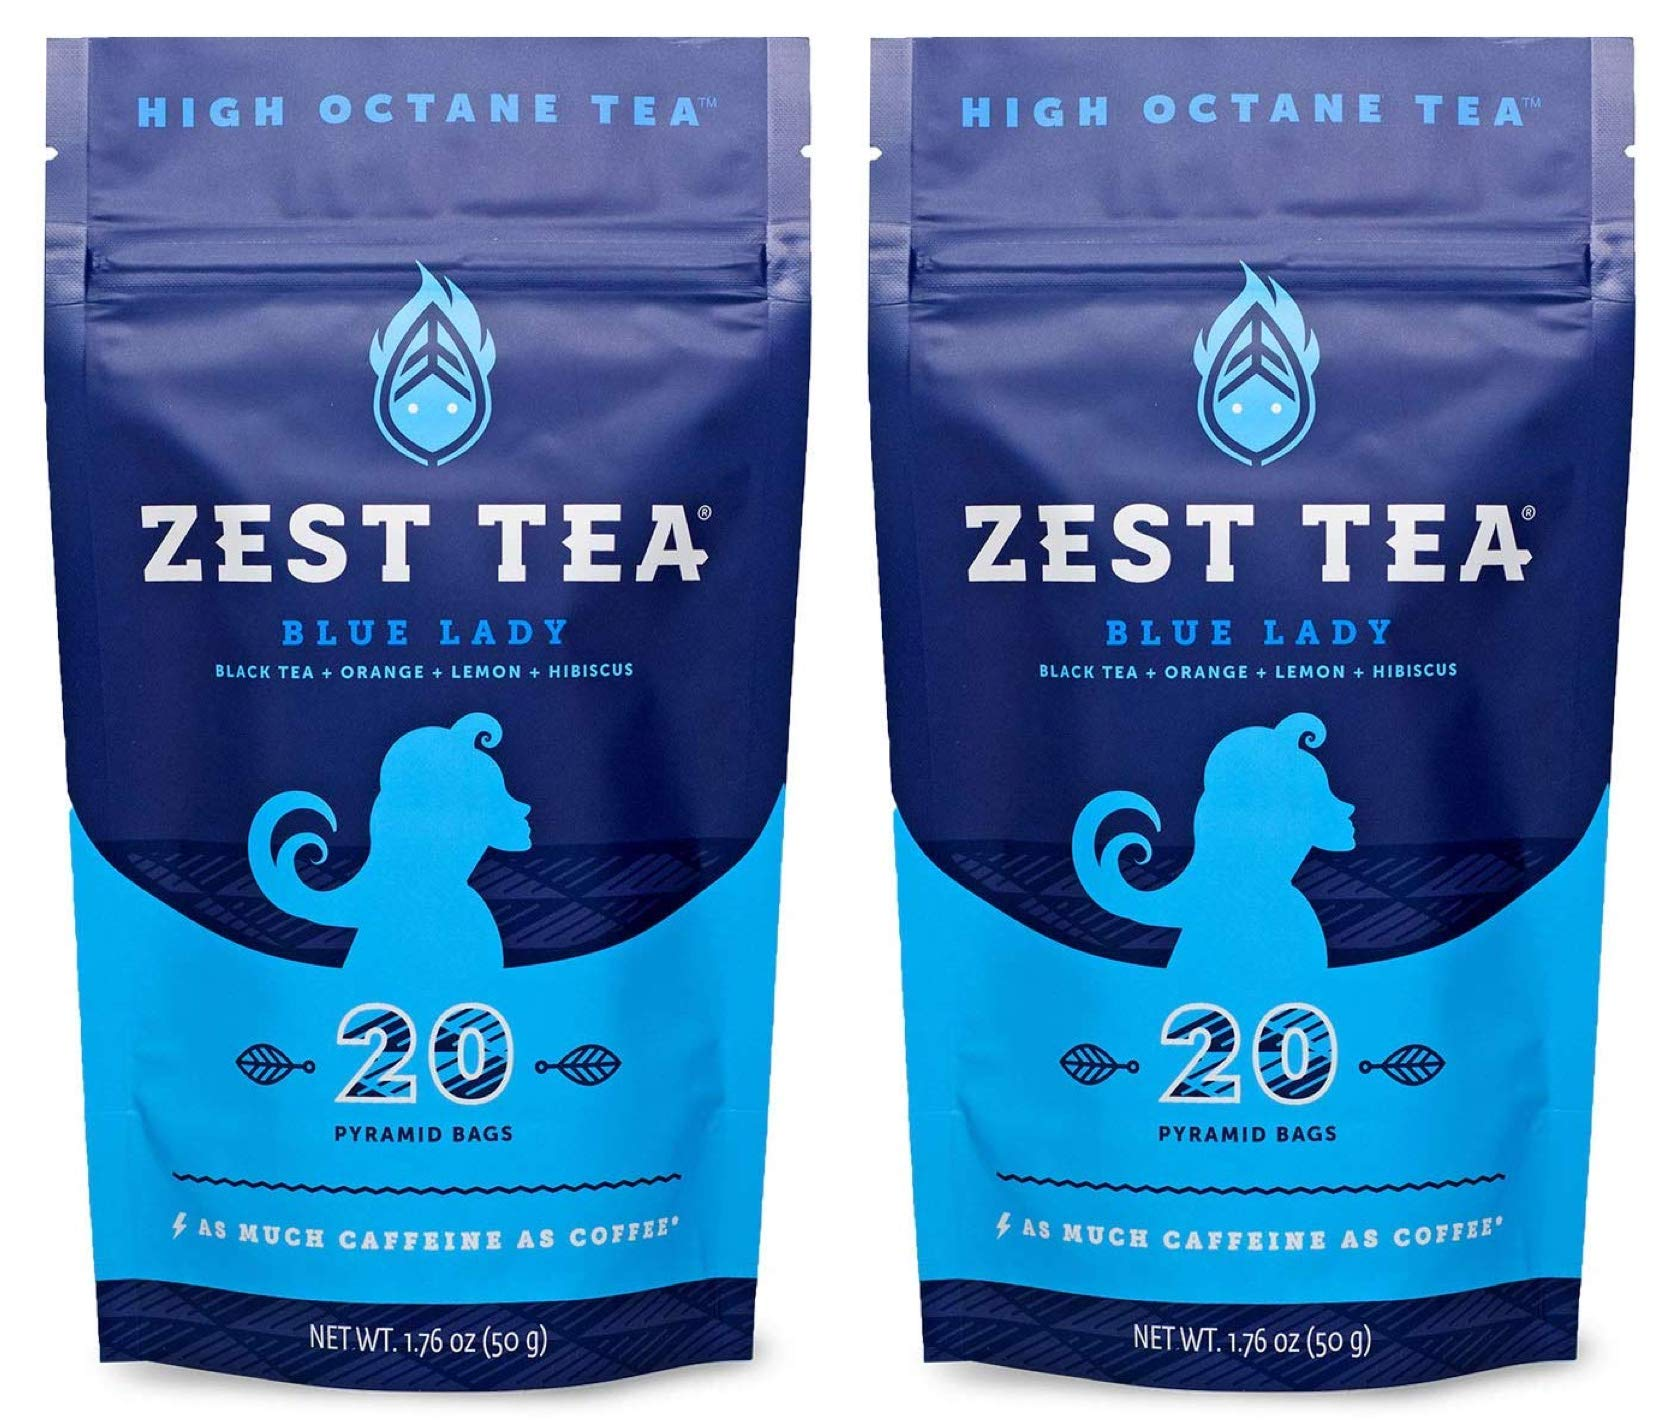 Zest Tea Energy Hot Tea, High Caffeine Blend Natural & Healthy Black Coffee Substitute, Perfect for Keto, 150 mg Caffeine per Serving, Blue Lady Black Tea, 40 Sachets (2 Pouches)